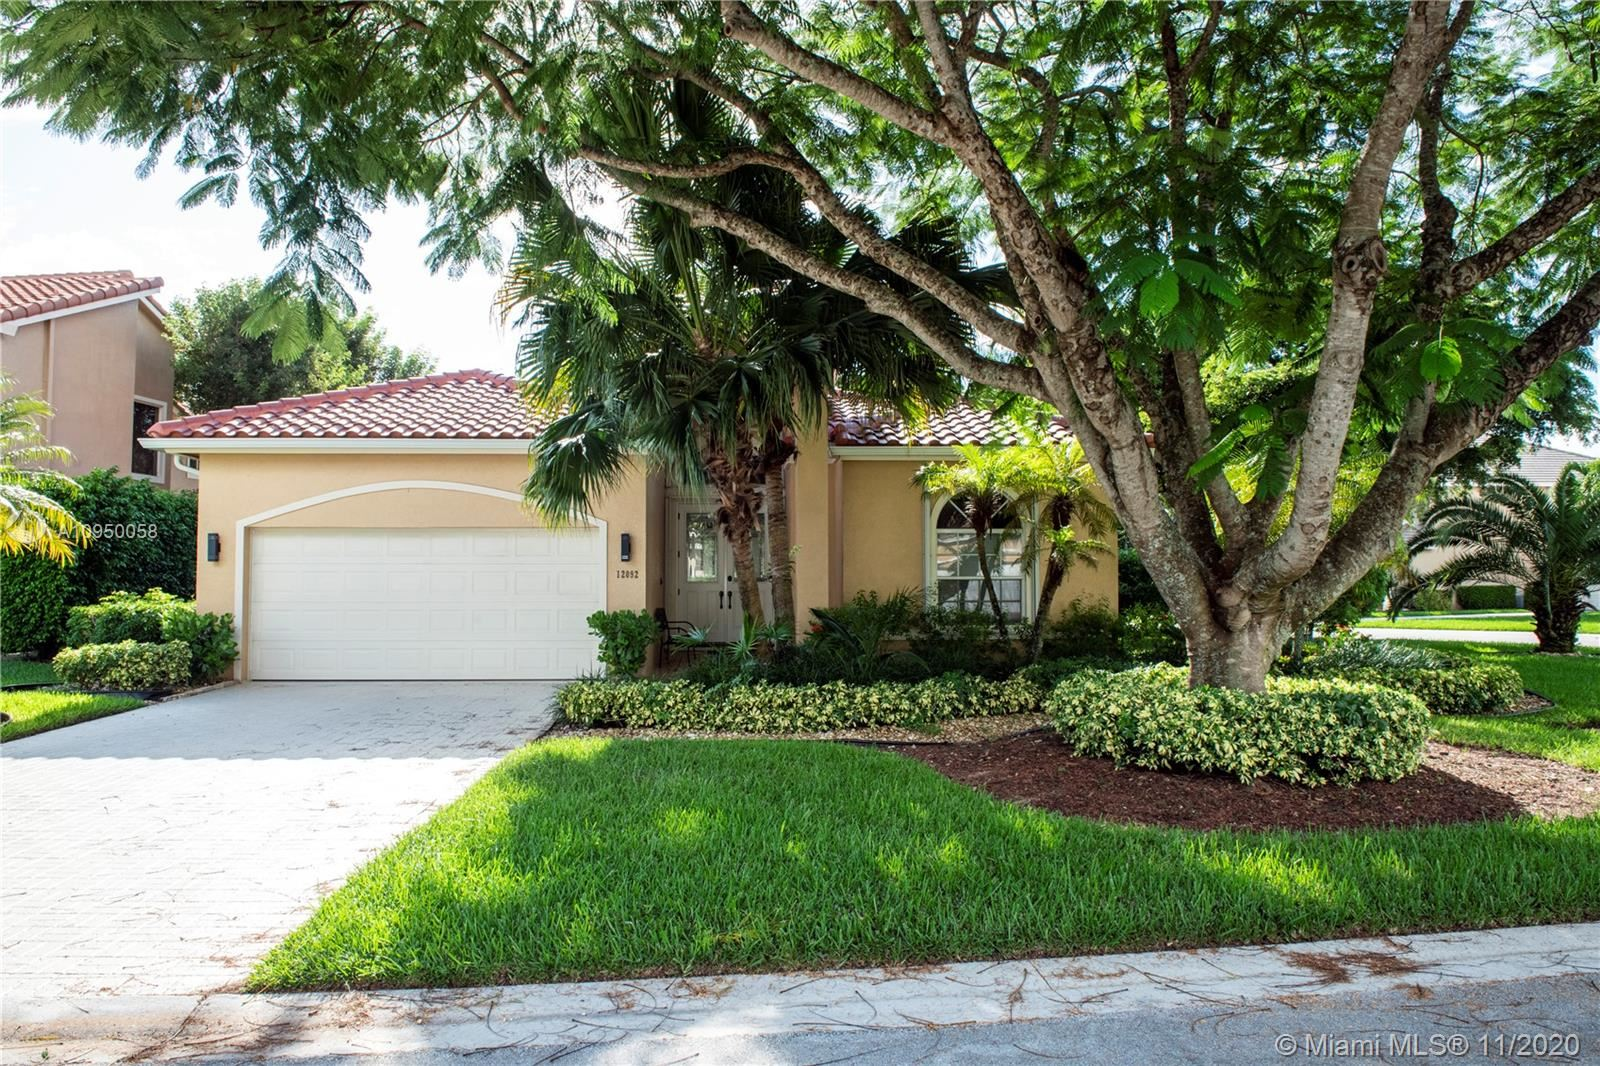 12092 Glenmore Dr, Coral Springs, FL 33071 - #: A10950058